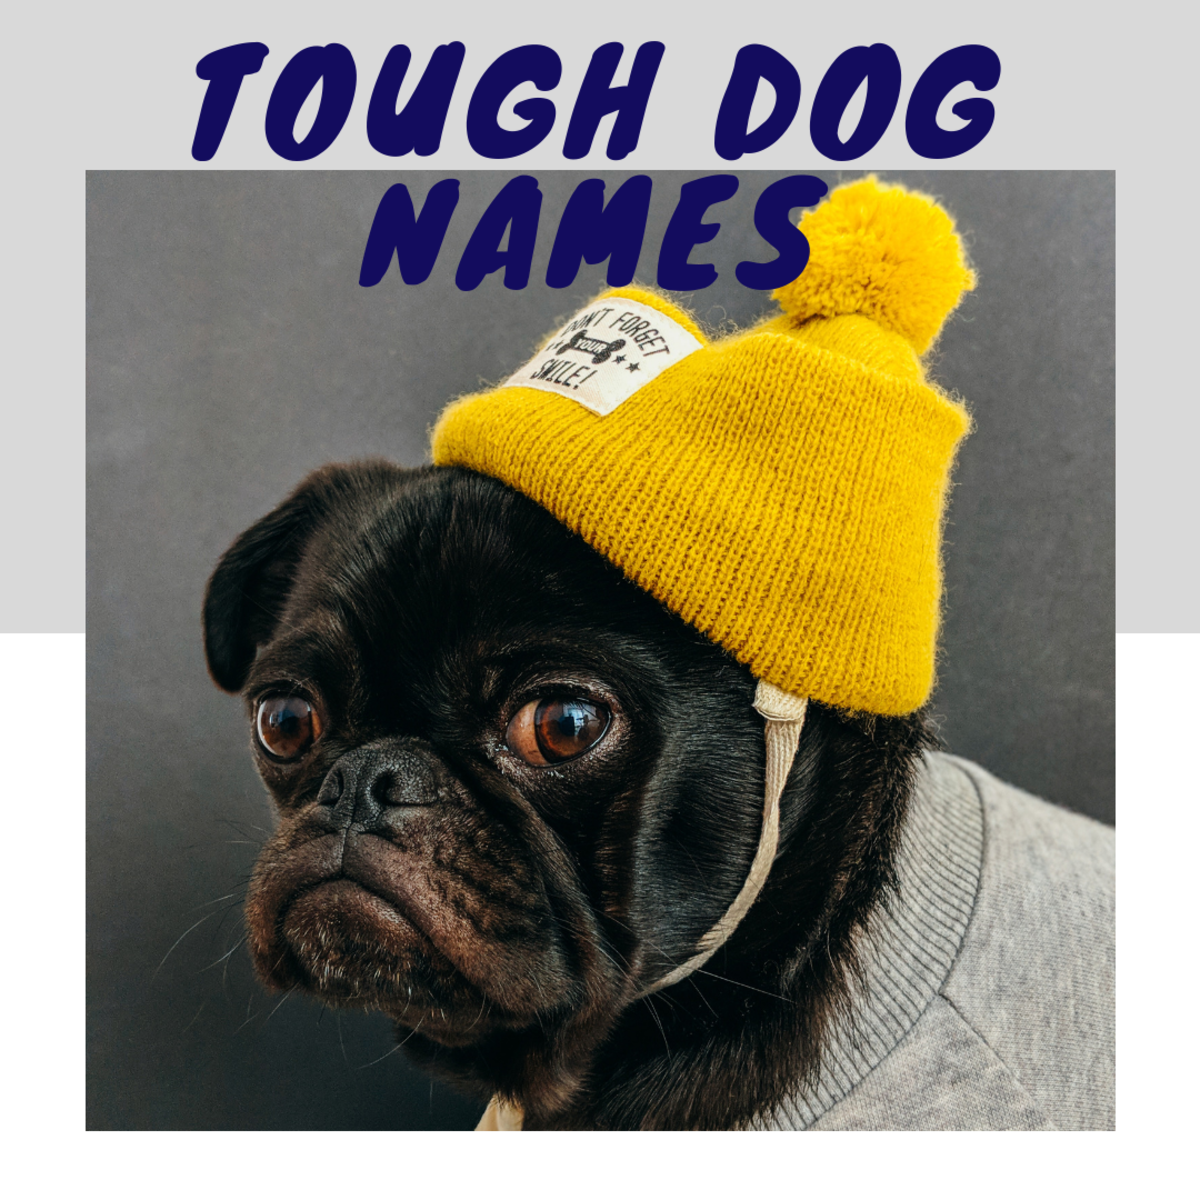 Guard Dog Names for Your Tough, Fierce, and Strong Canine